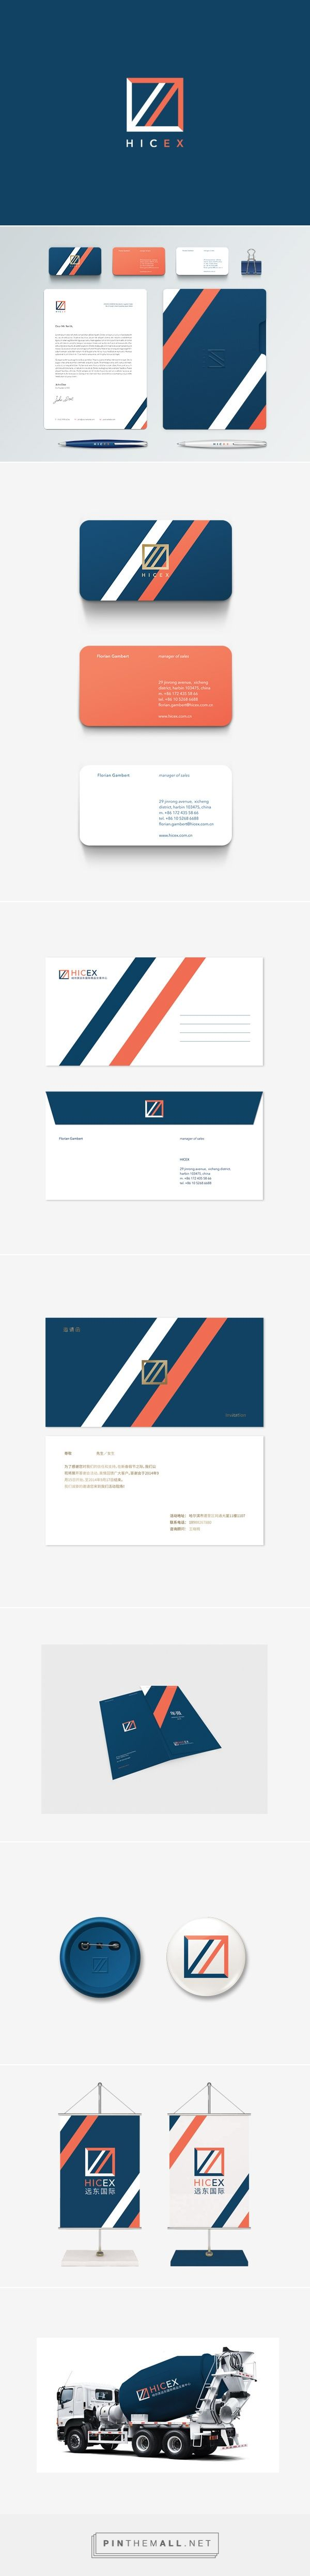 HICEX Harbin international Commodities Exchange on Behance | Fivestar Branding – Design and Branding Agency & Inspiration Gallery